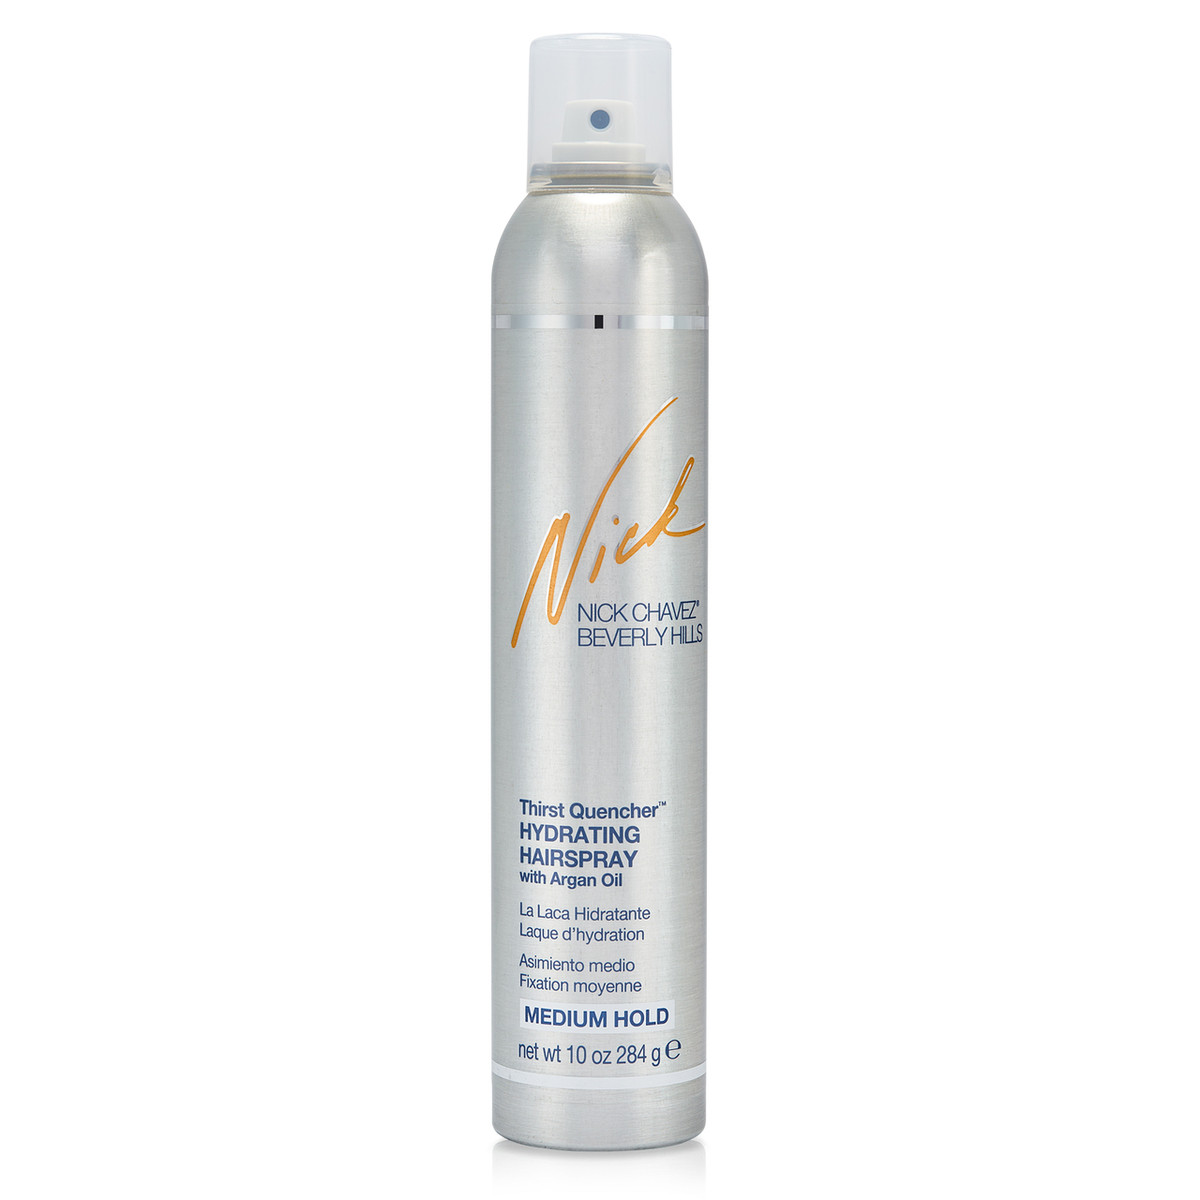 10oz Thirst Quencher Hydrating Hairspray